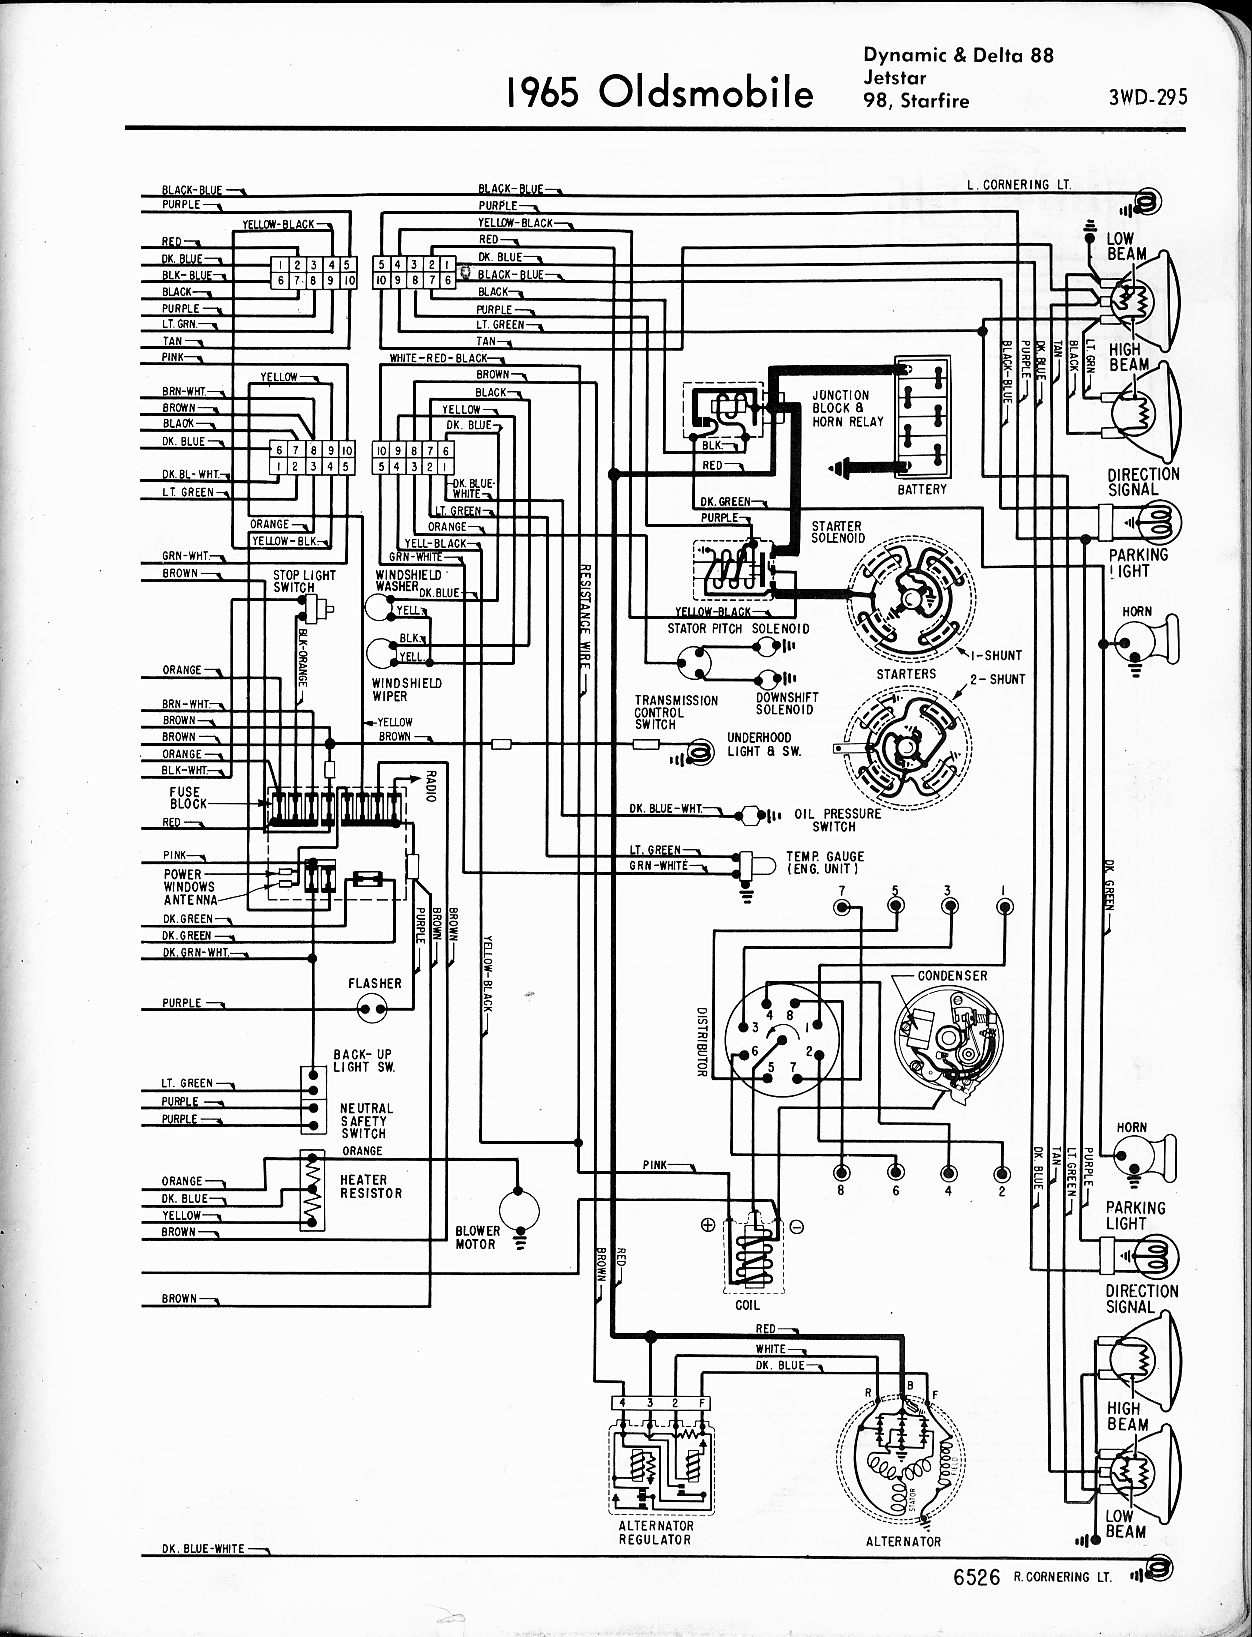 Oldsmobile wiring diagrams - The Old Car Manual Project on free auto wiring schematic, free car repair manuals, free vehicle diagrams, free chilton diagrams, free car parts, electrical diagrams, free diagram templates, free schematic diagram, free auto diagrams, free home, free honda wiring diagram, free car schematics, free electronic schematics, free engine rebuilding diagrams, free car seats, free car diagnostic, free car tools, free car maintenance, free car engine diagrams, free toyota repair diagrams,